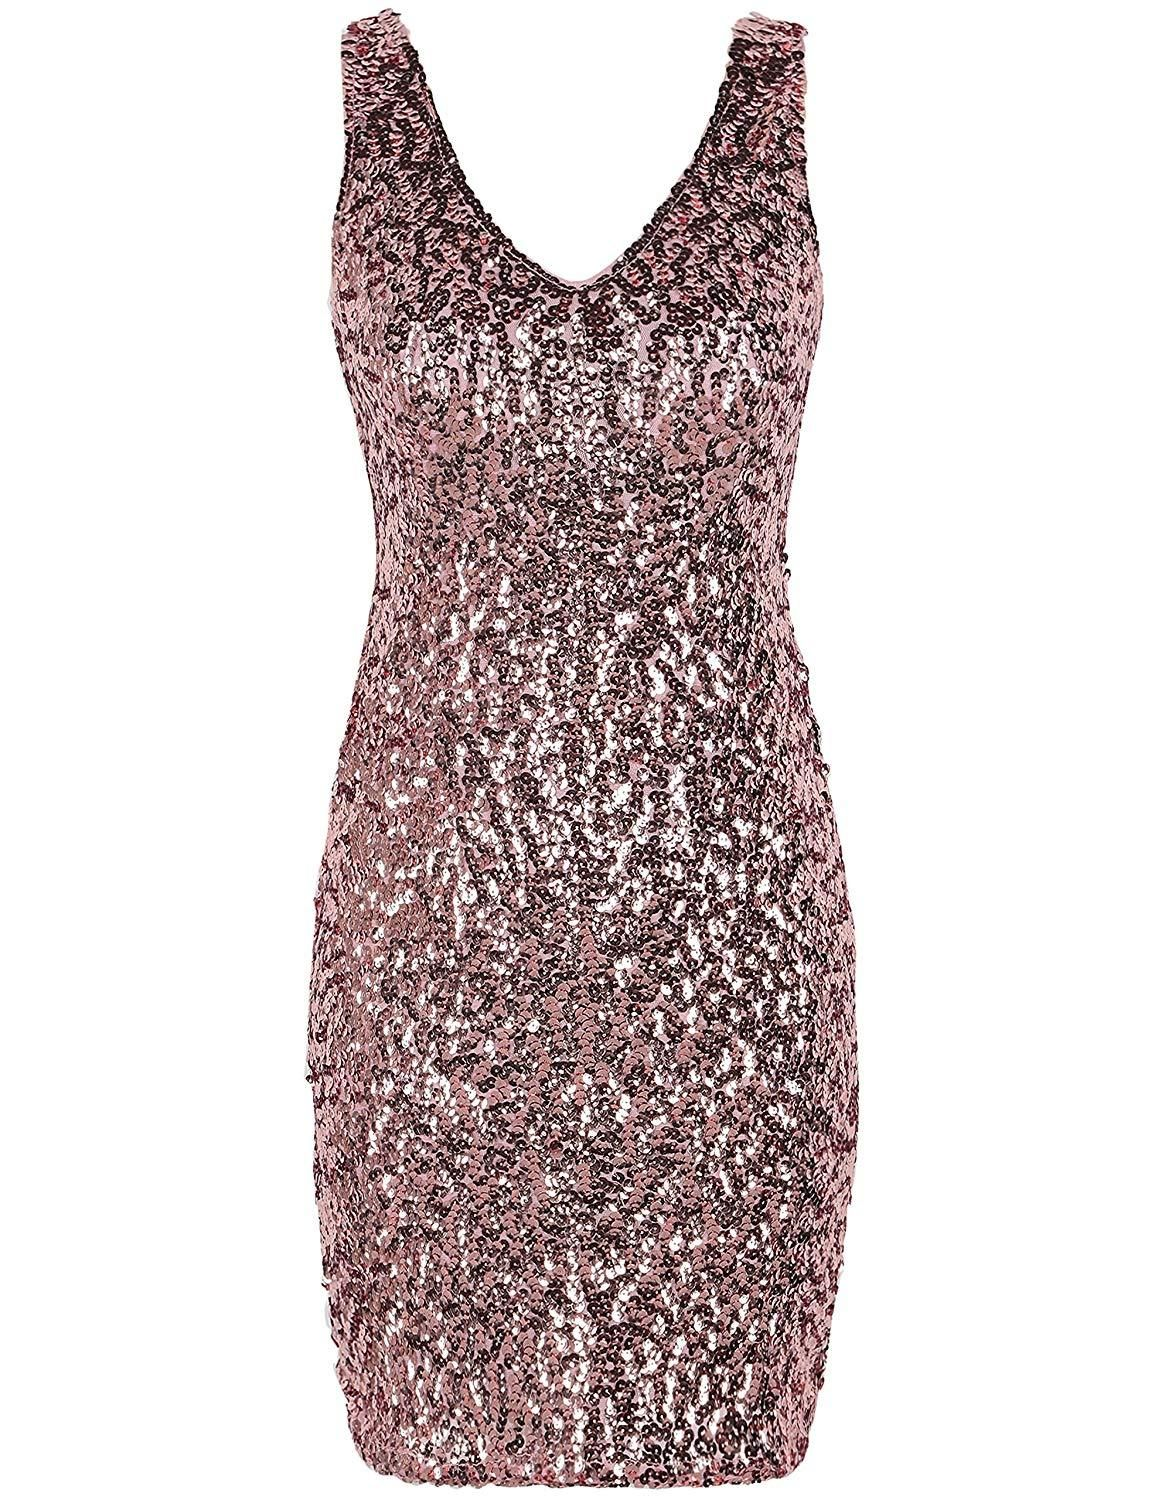 c7f9c834e3a2 PrettyGuide Women's Sexy Deep V Neck Sequin Glitter Bodycon Stretchy Mini Party  Dress